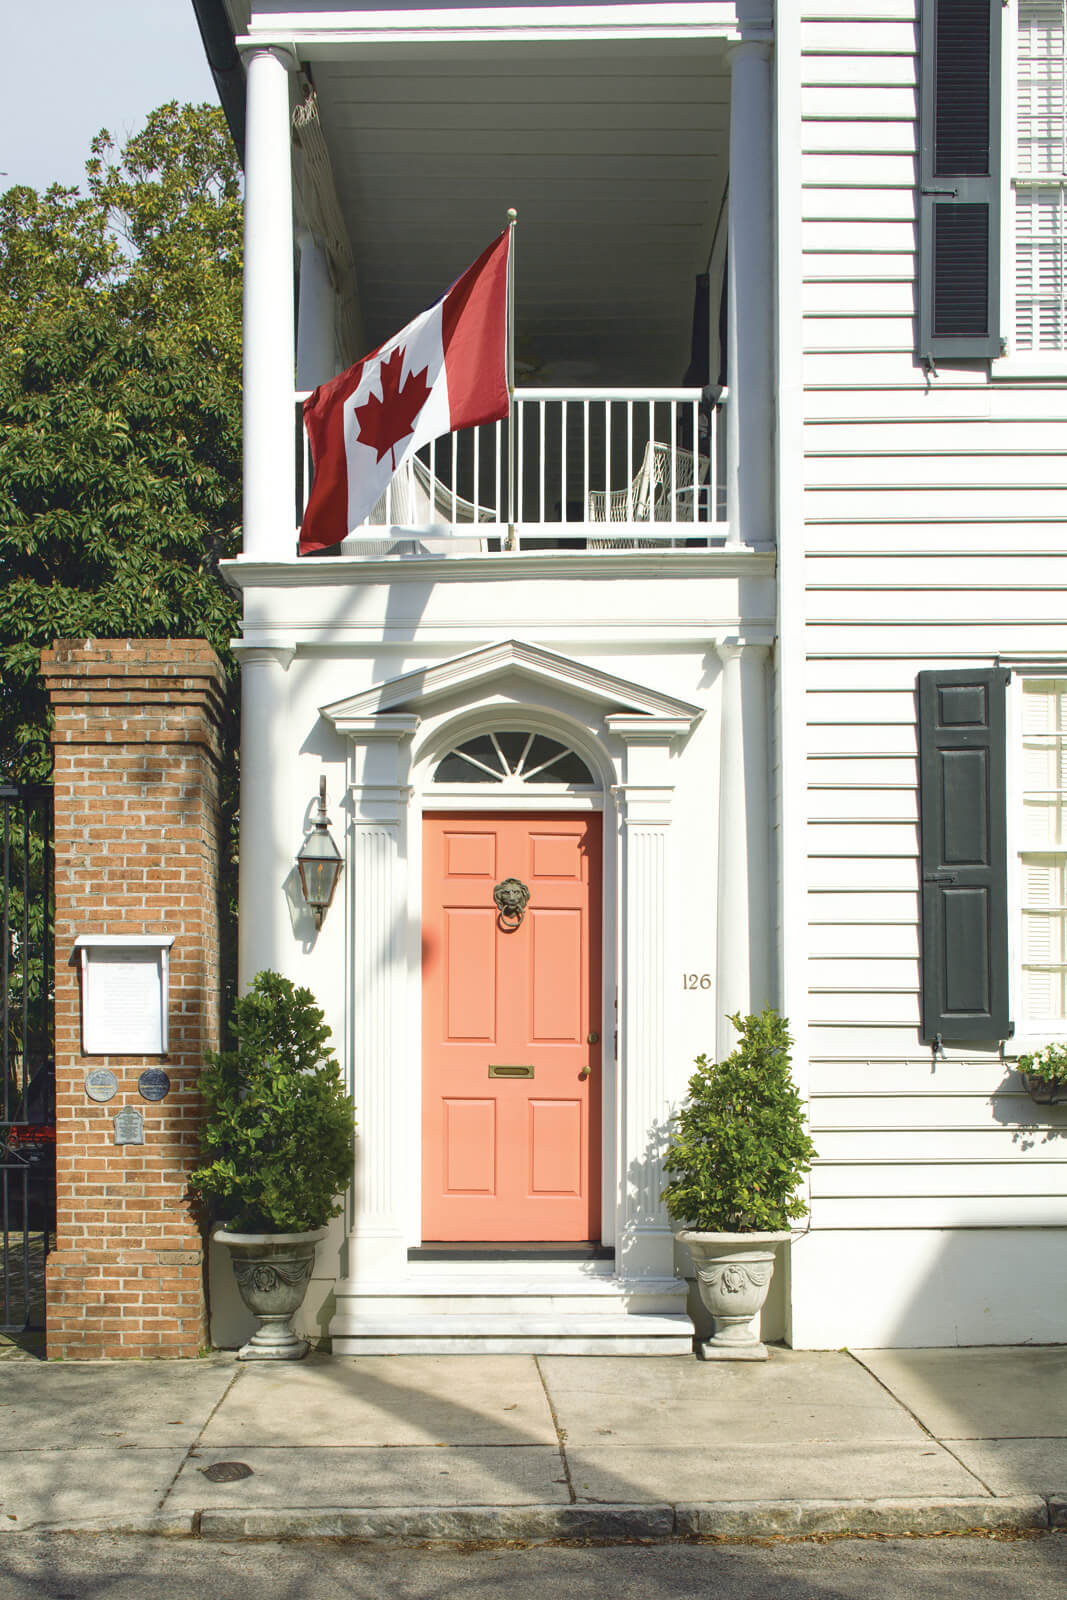 Home_with_Coral_Door_and_Canadian_Flag.jpg